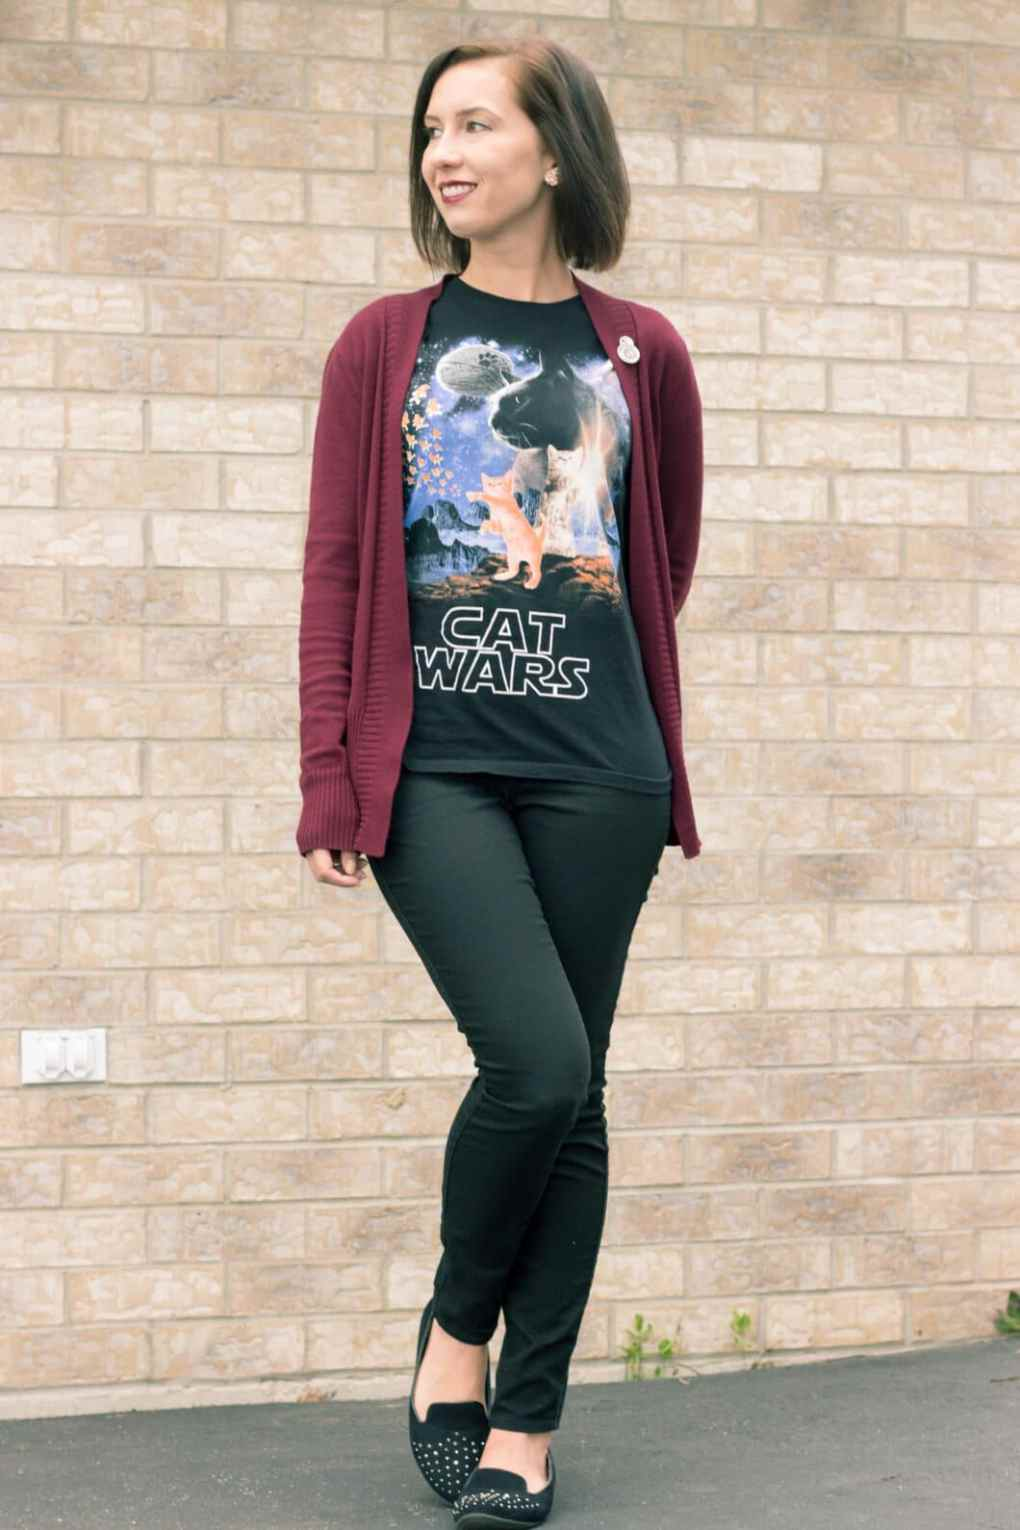 Star Wars Cat Wars shirt